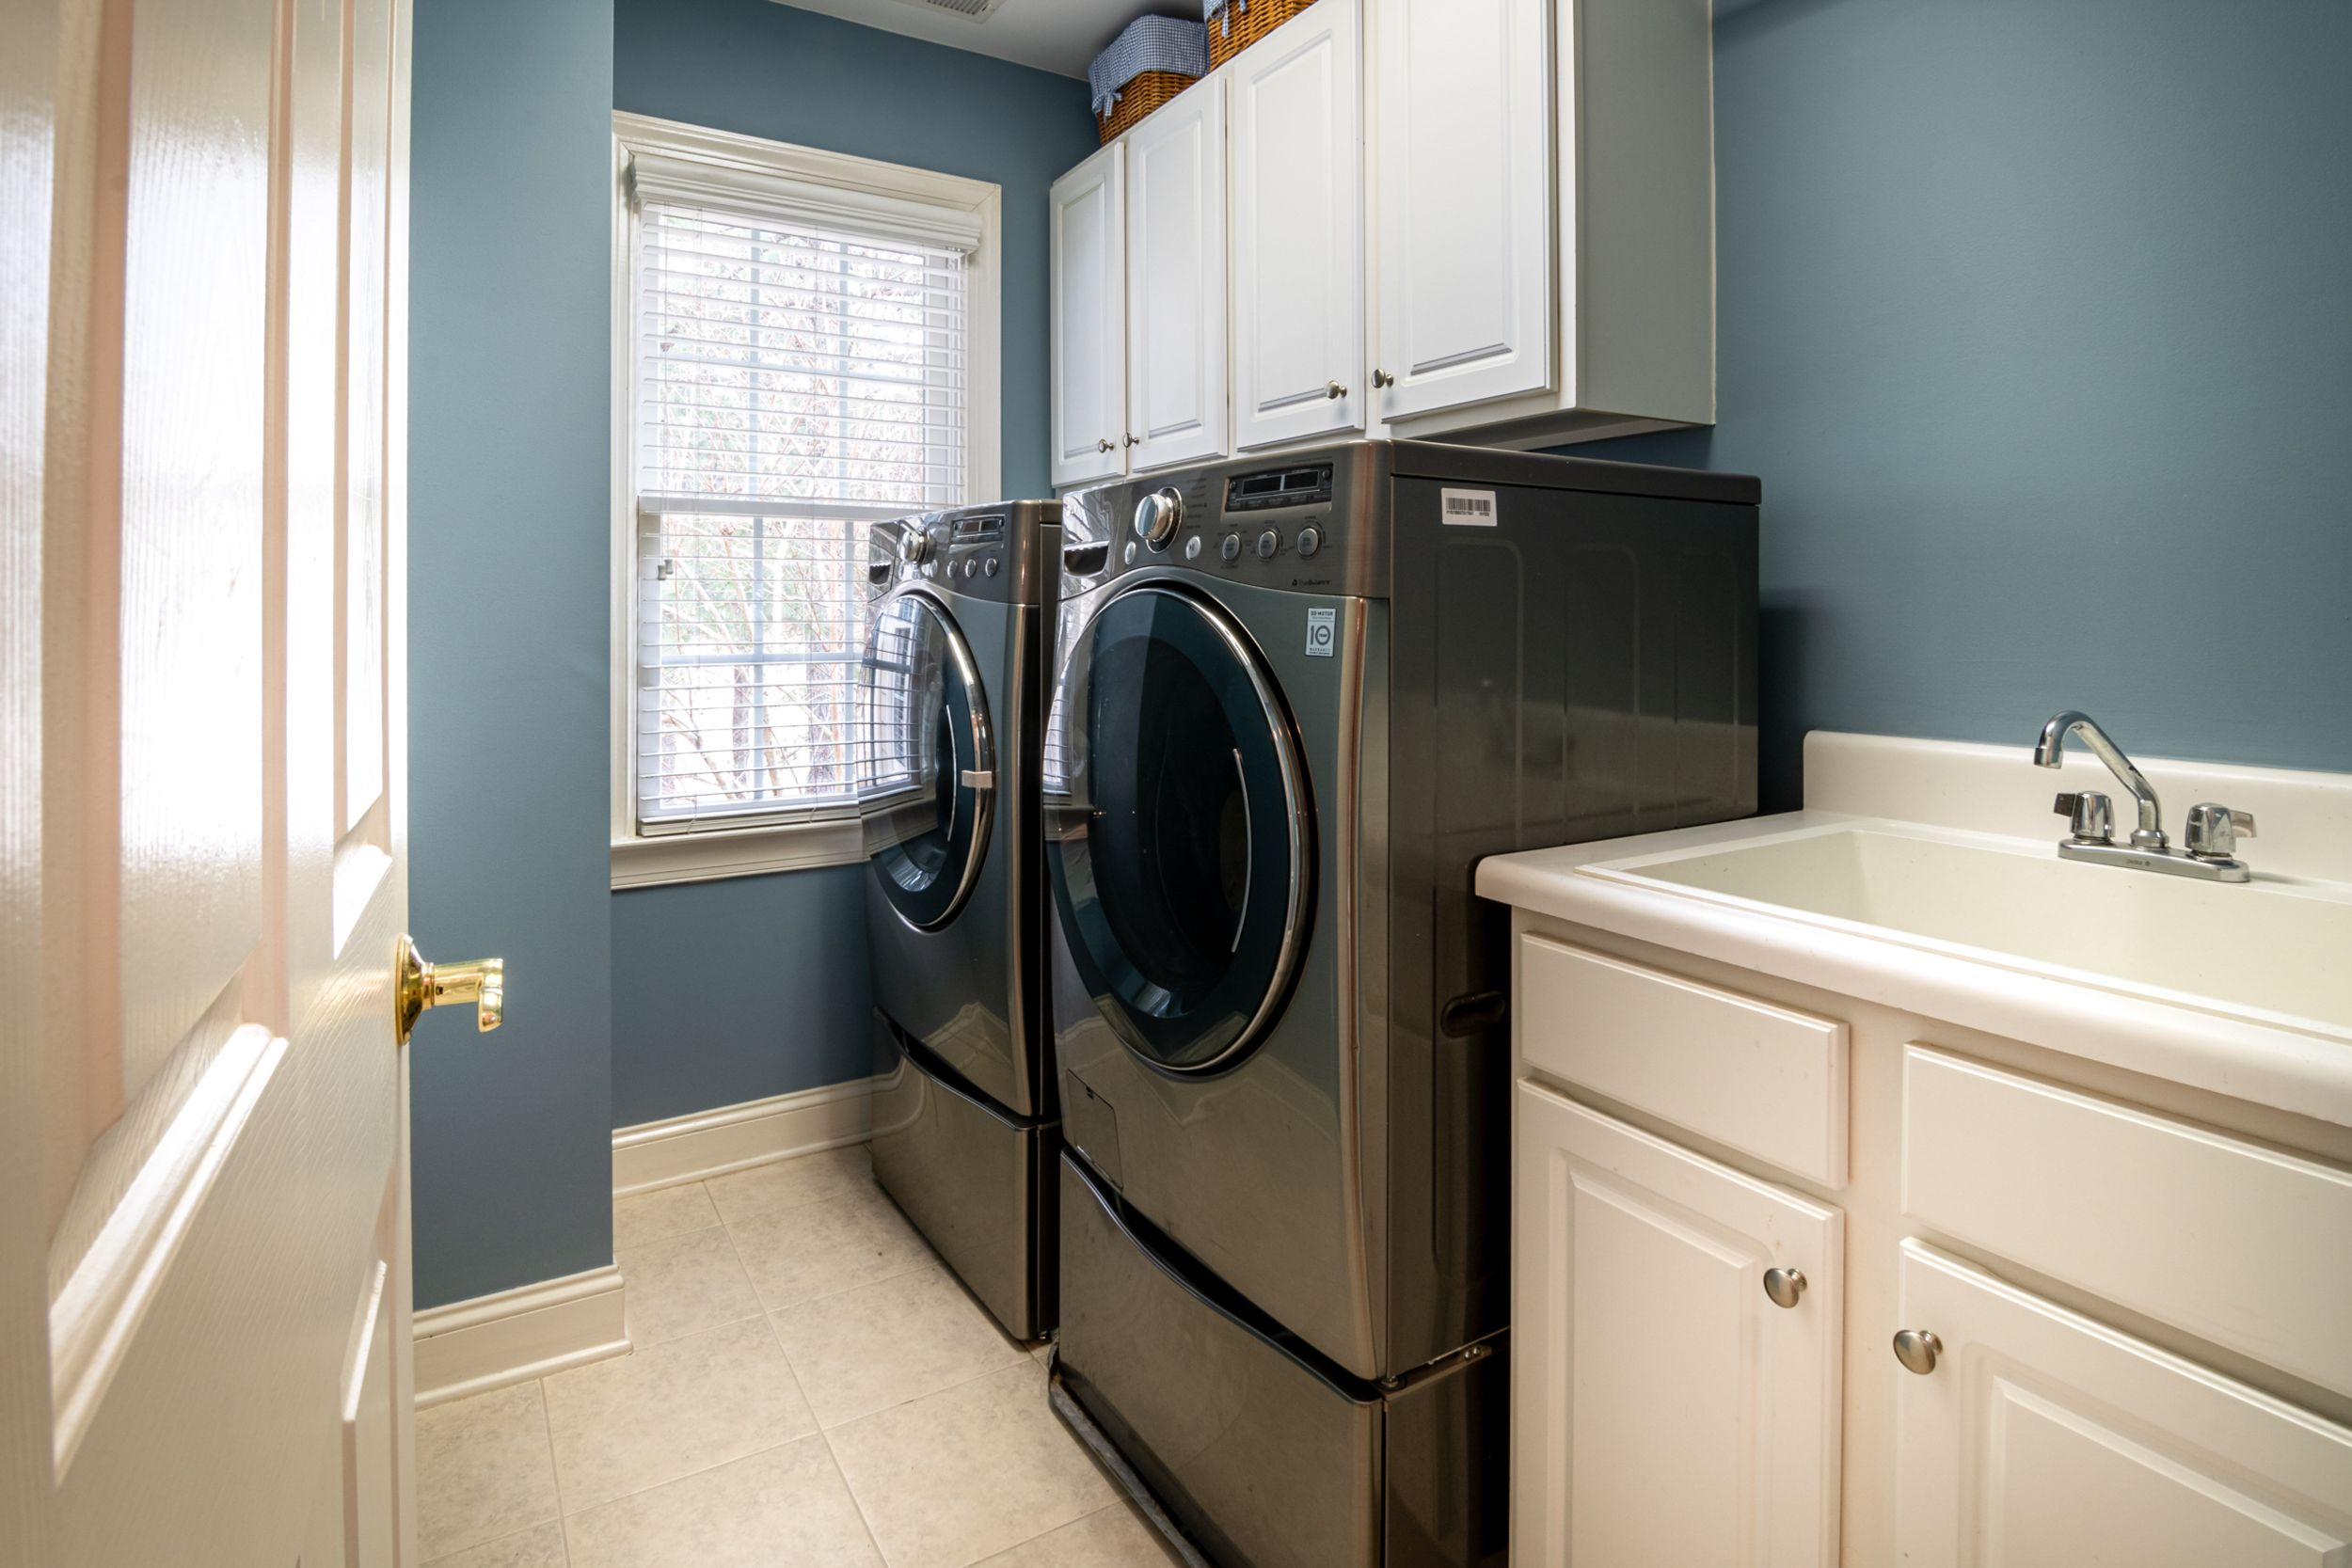 Washing machine and dryer in Laundry Room Renovation